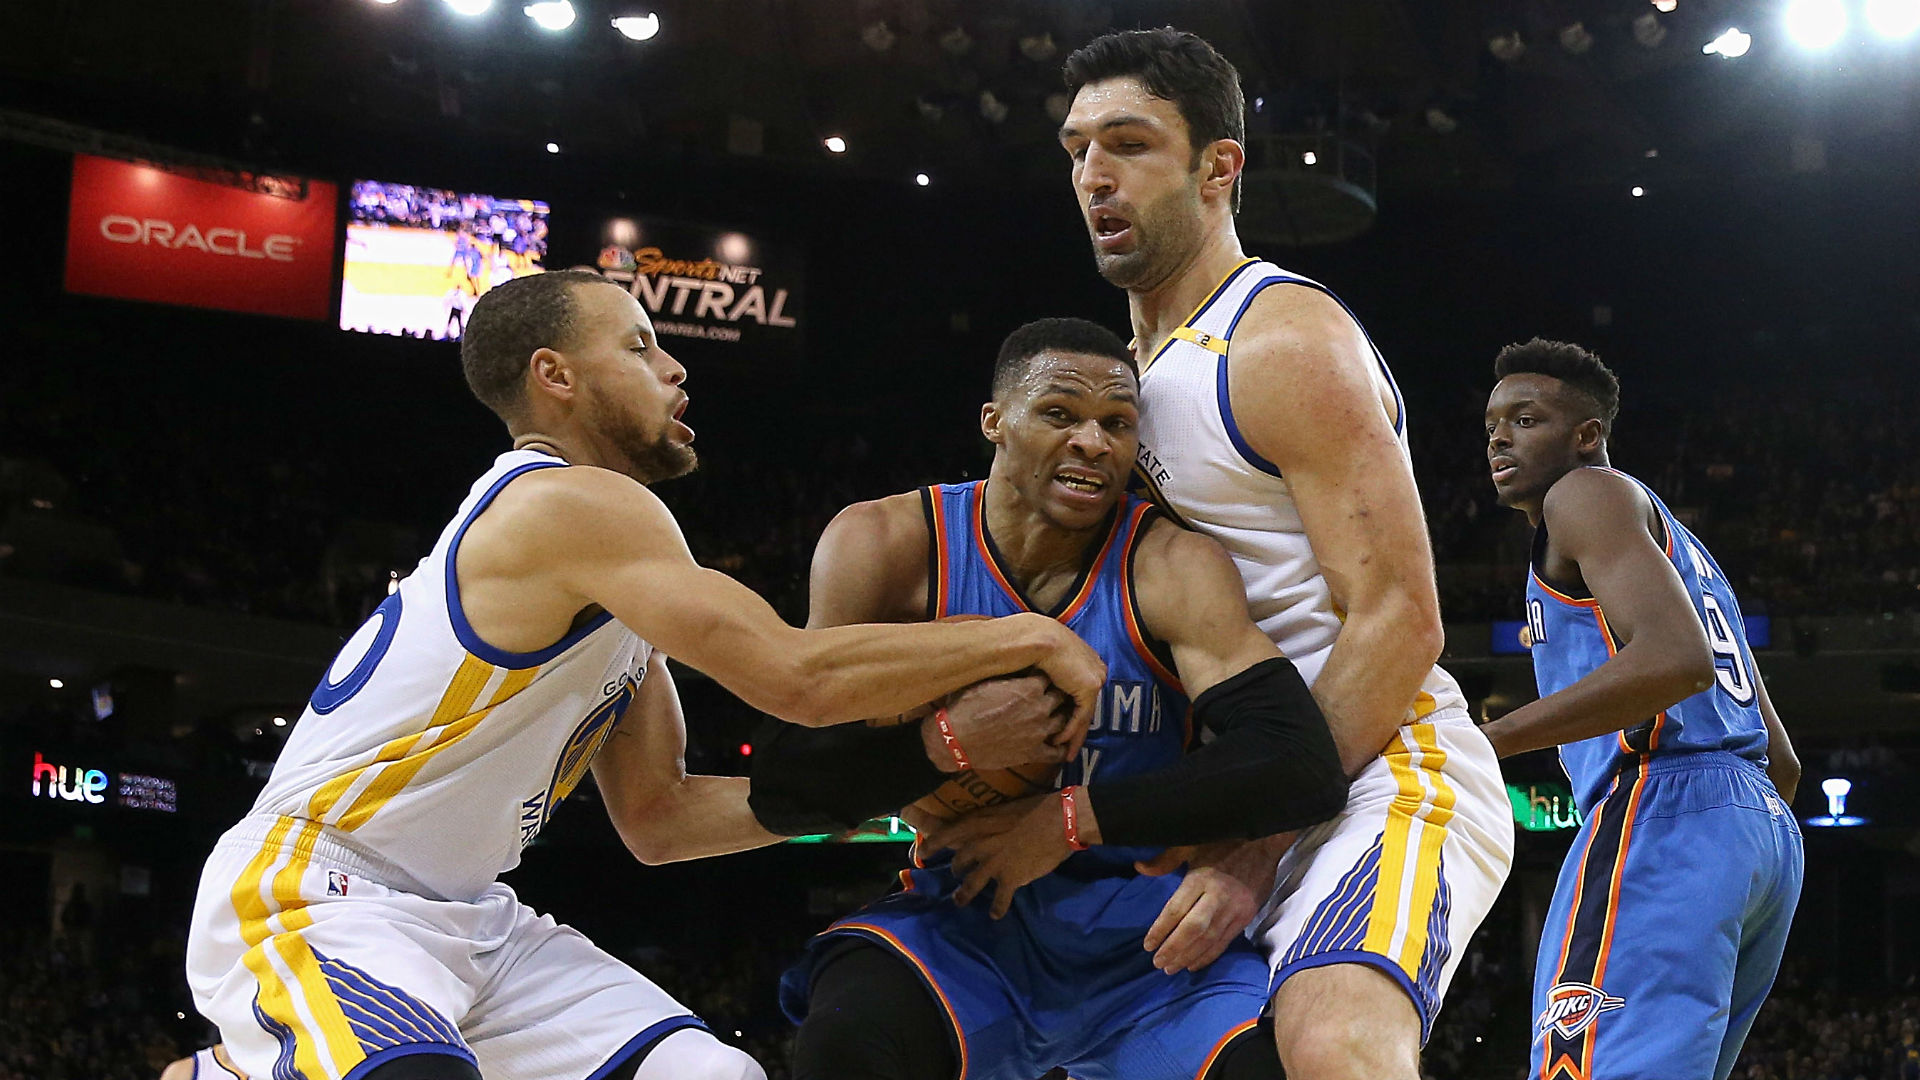 Zaza Pachulia Purposely Fell Down Hard on Russell Westbrook's Legs